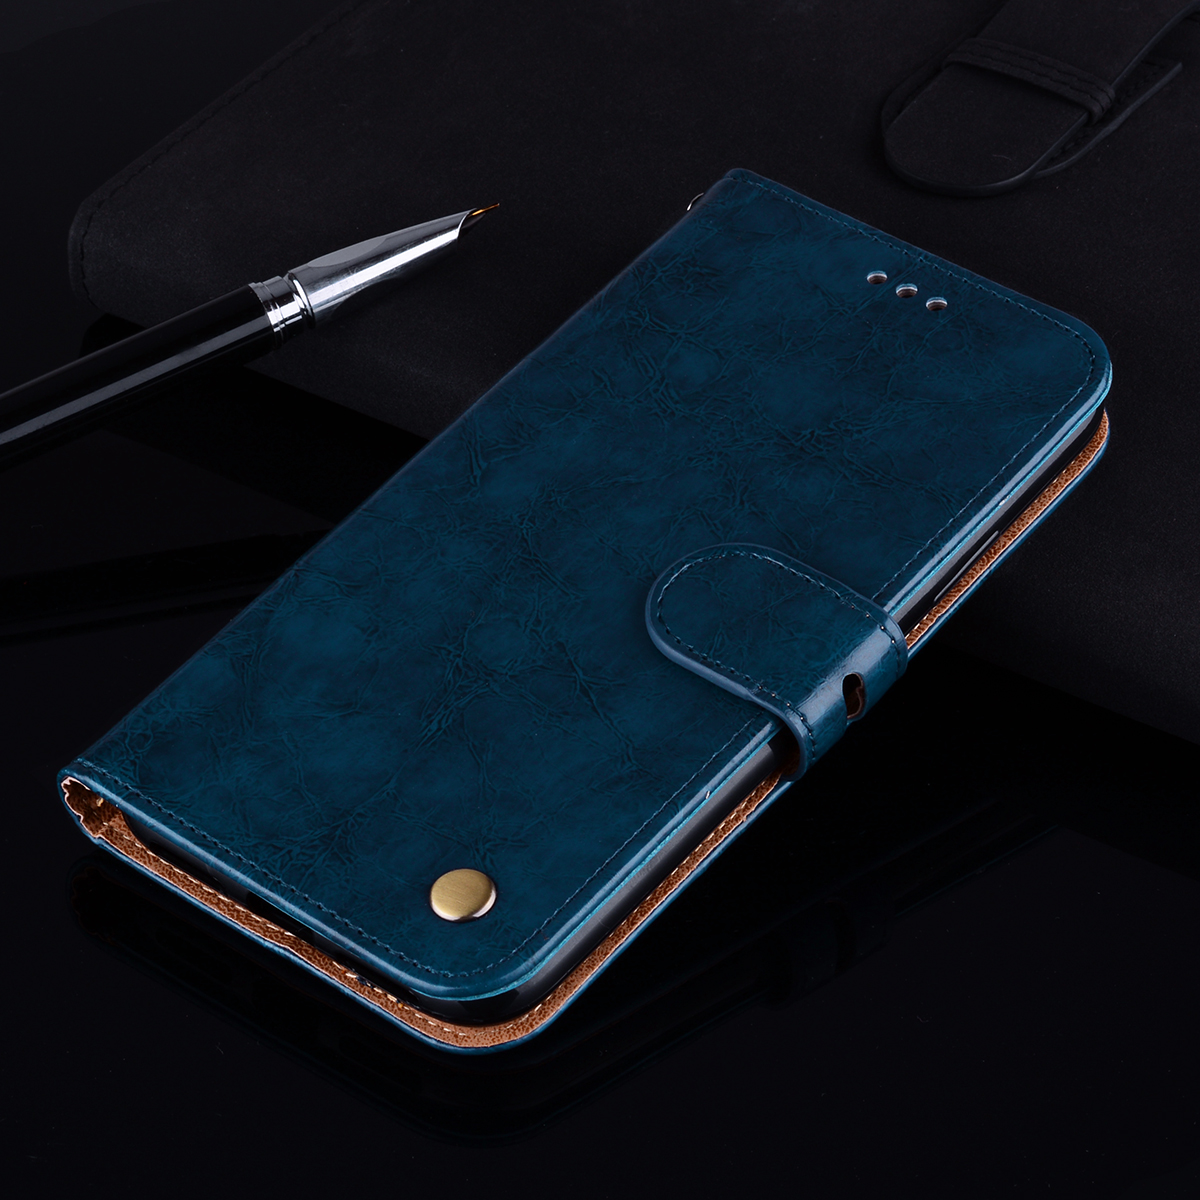 Leather Wallet Case <font><b>For</b></font> <font><b>Huawei</b></font> Y5 Prime 2018 <font><b>DRA</b></font>-L21 Y5 2018 <font><b>DRA</b></font>-<font><b>LX2</b></font> <font><b>Phone</b></font> Stand Flip Capa <font><b>Huawei</b></font> Y5 Lite <font><b>DRA</b></font>-LX5 Silicone Cover image